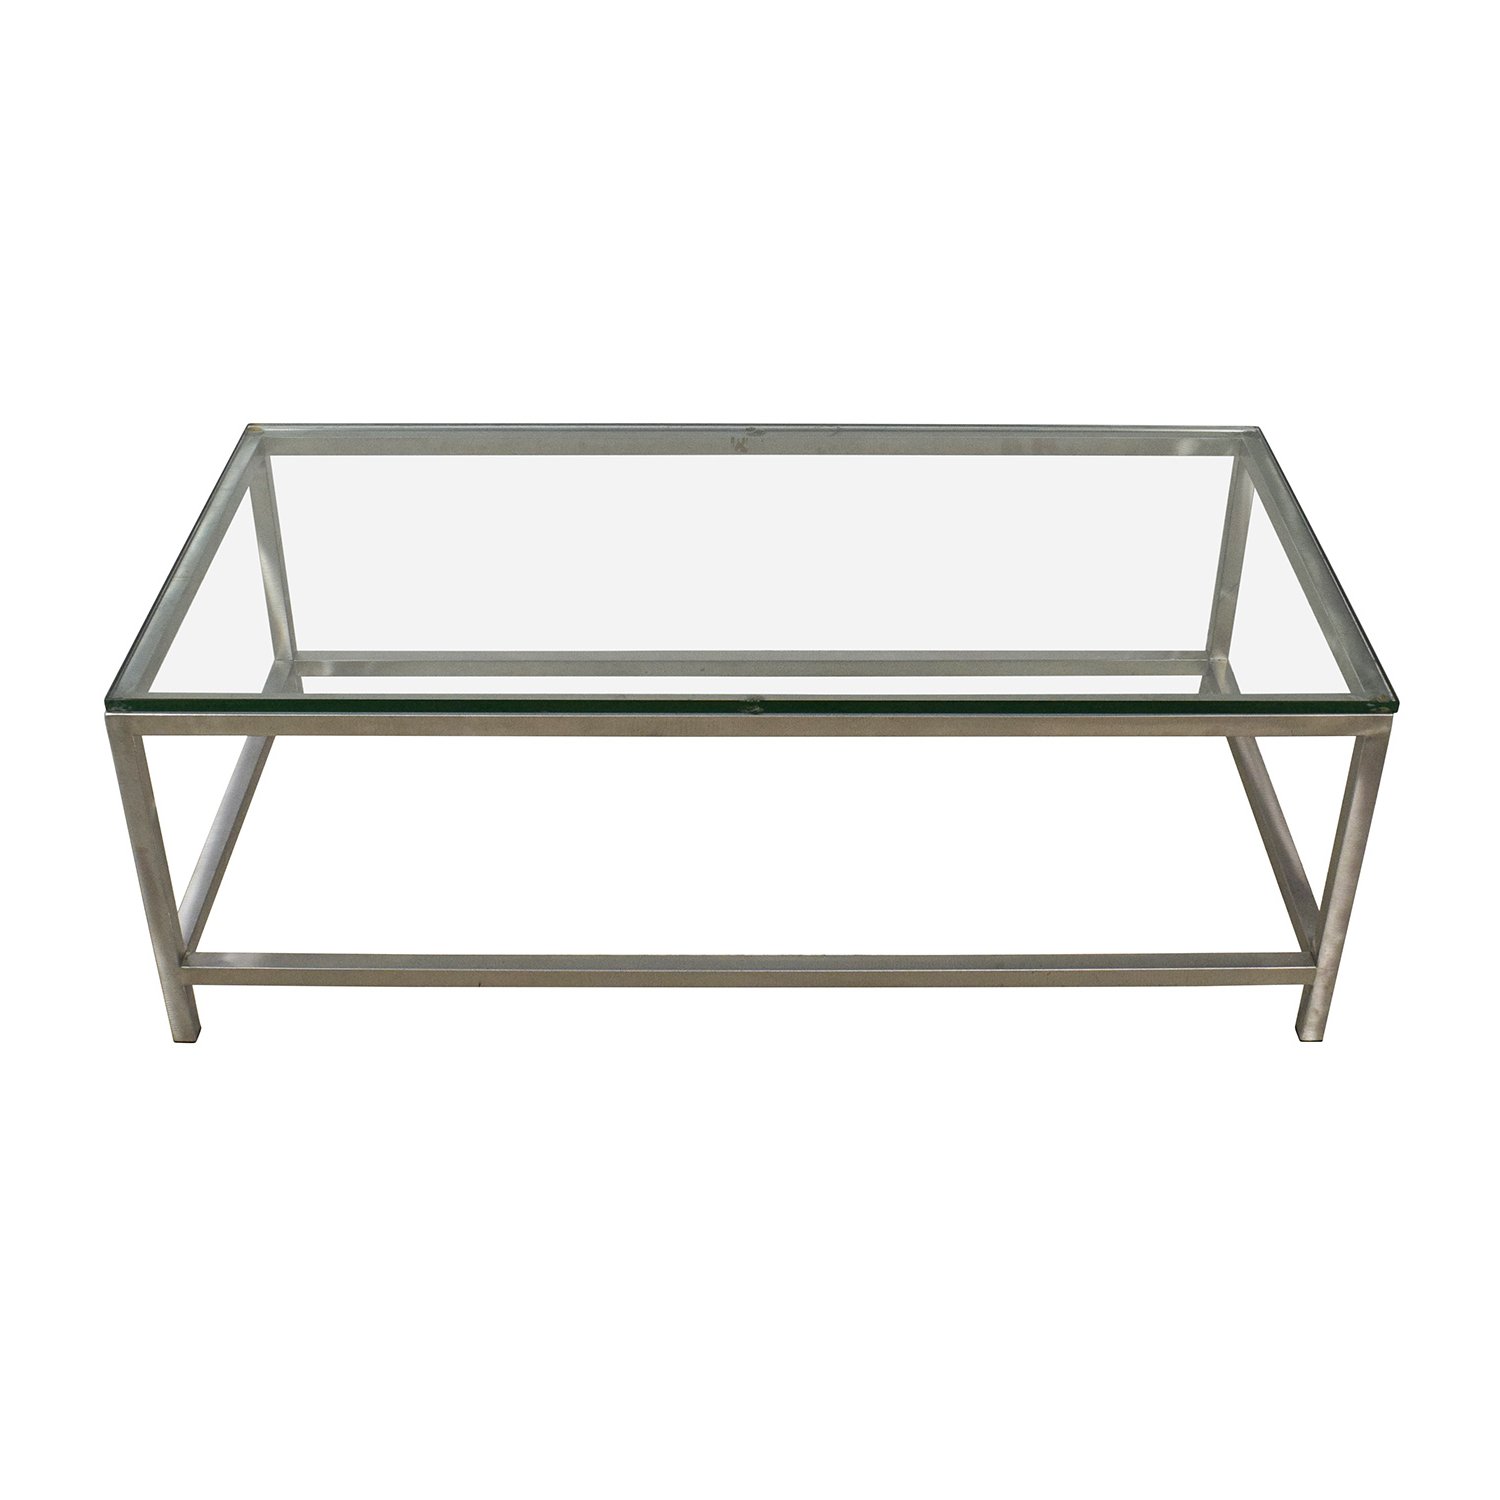 64% Off – Crate And Barrel Crate & Barrel Era Rectangular Glass Top Within Era Glass Console Tables (View 17 of 20)